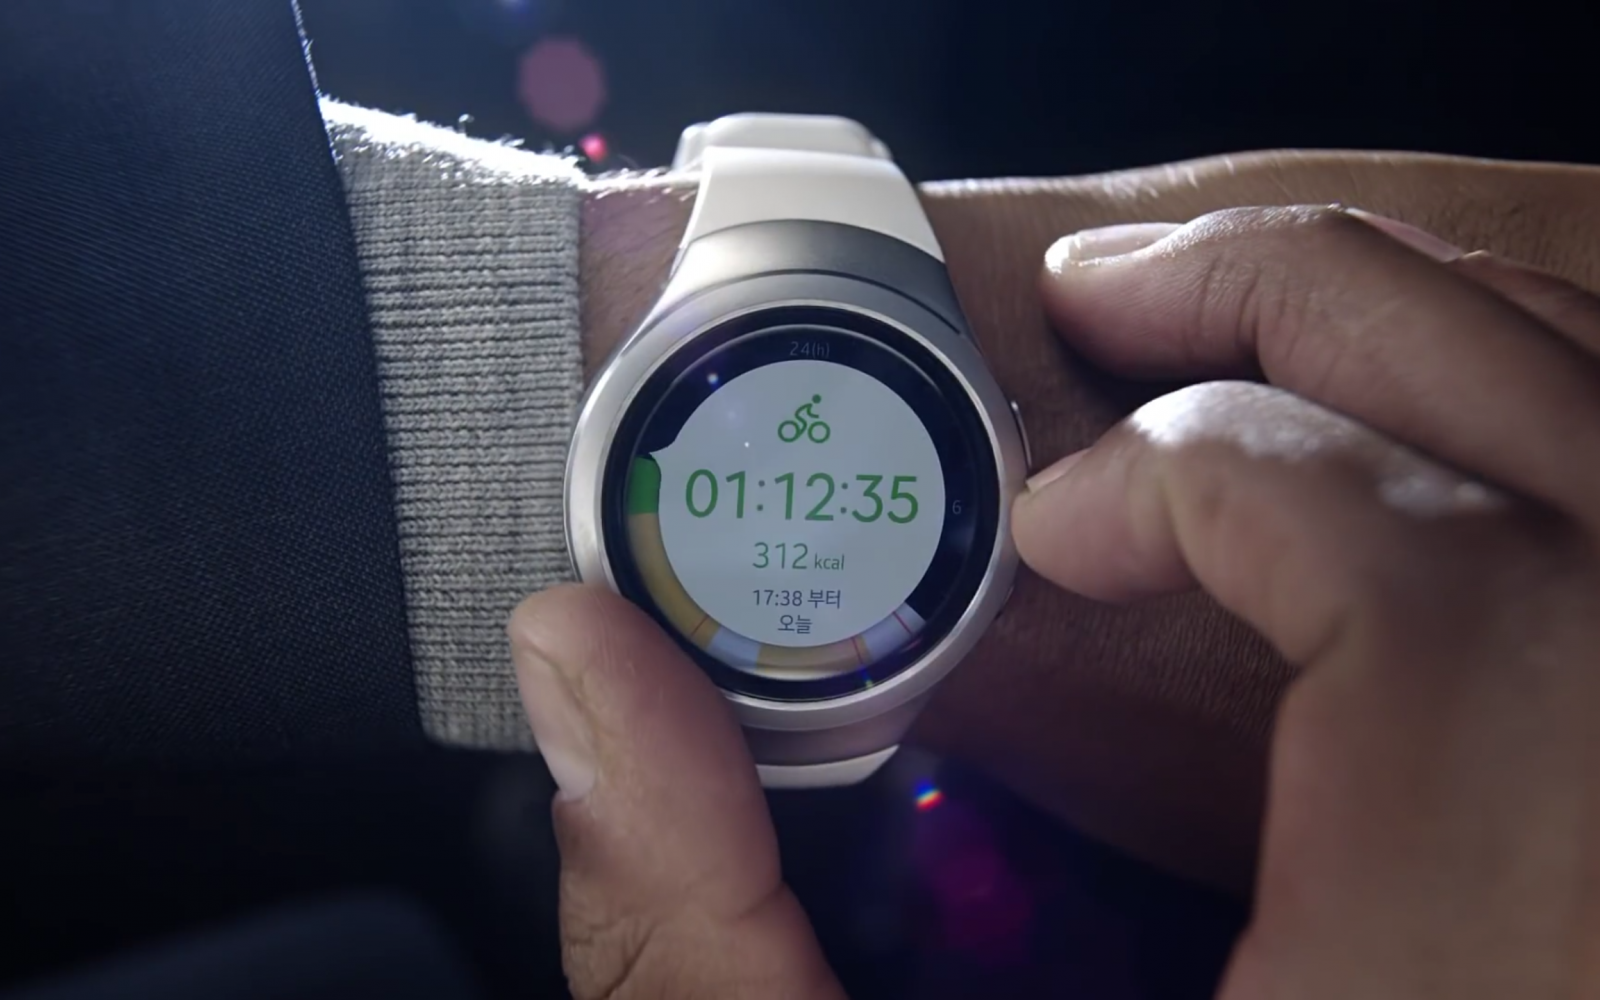 The Gear S2, like Samsung, is evolving and changing, company says